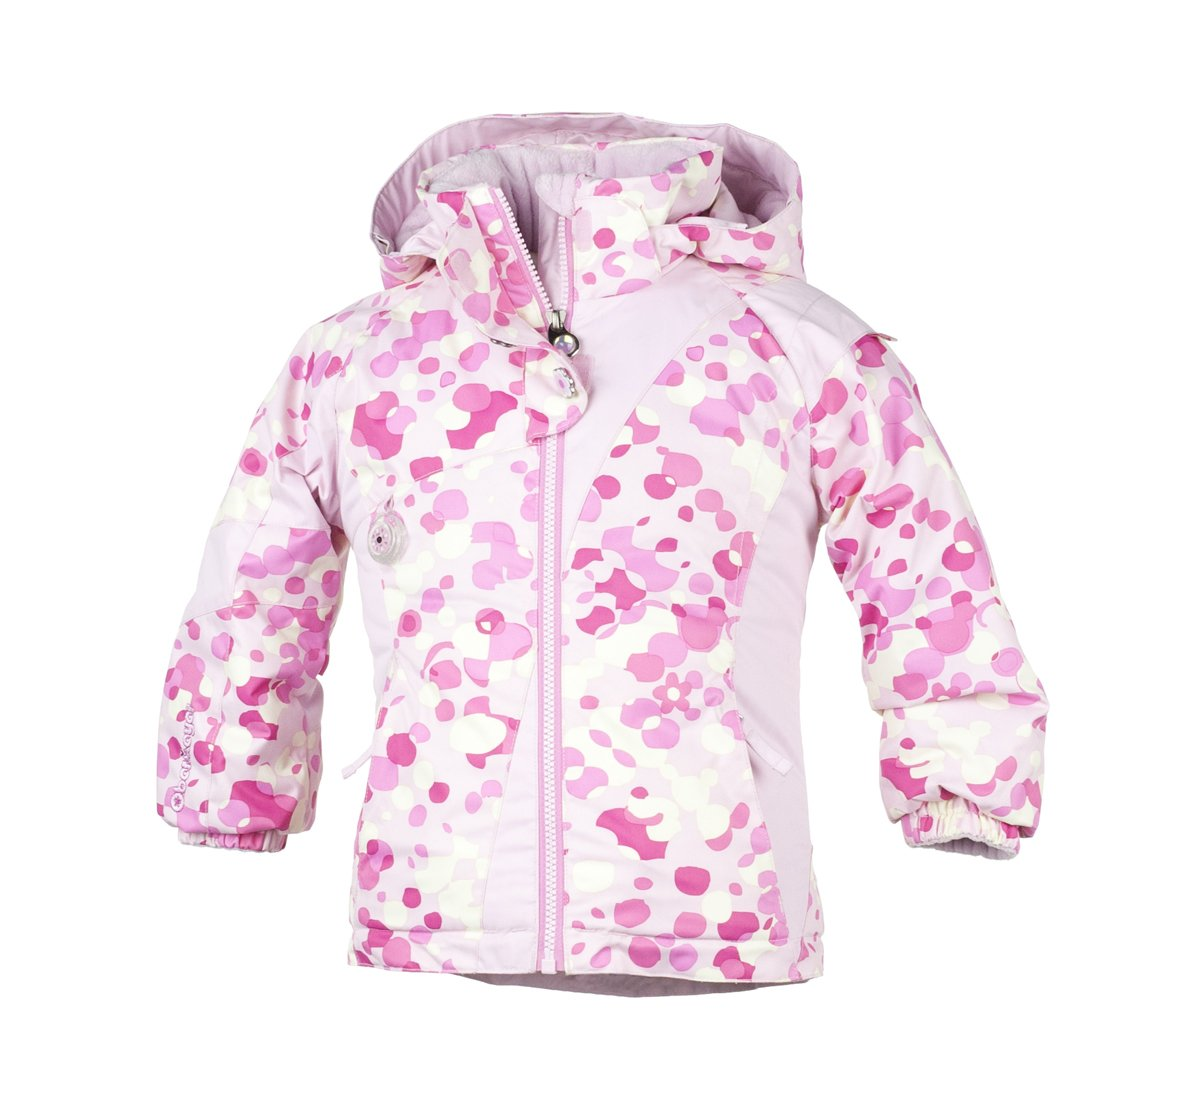 Kids Ski Clothes | skimama